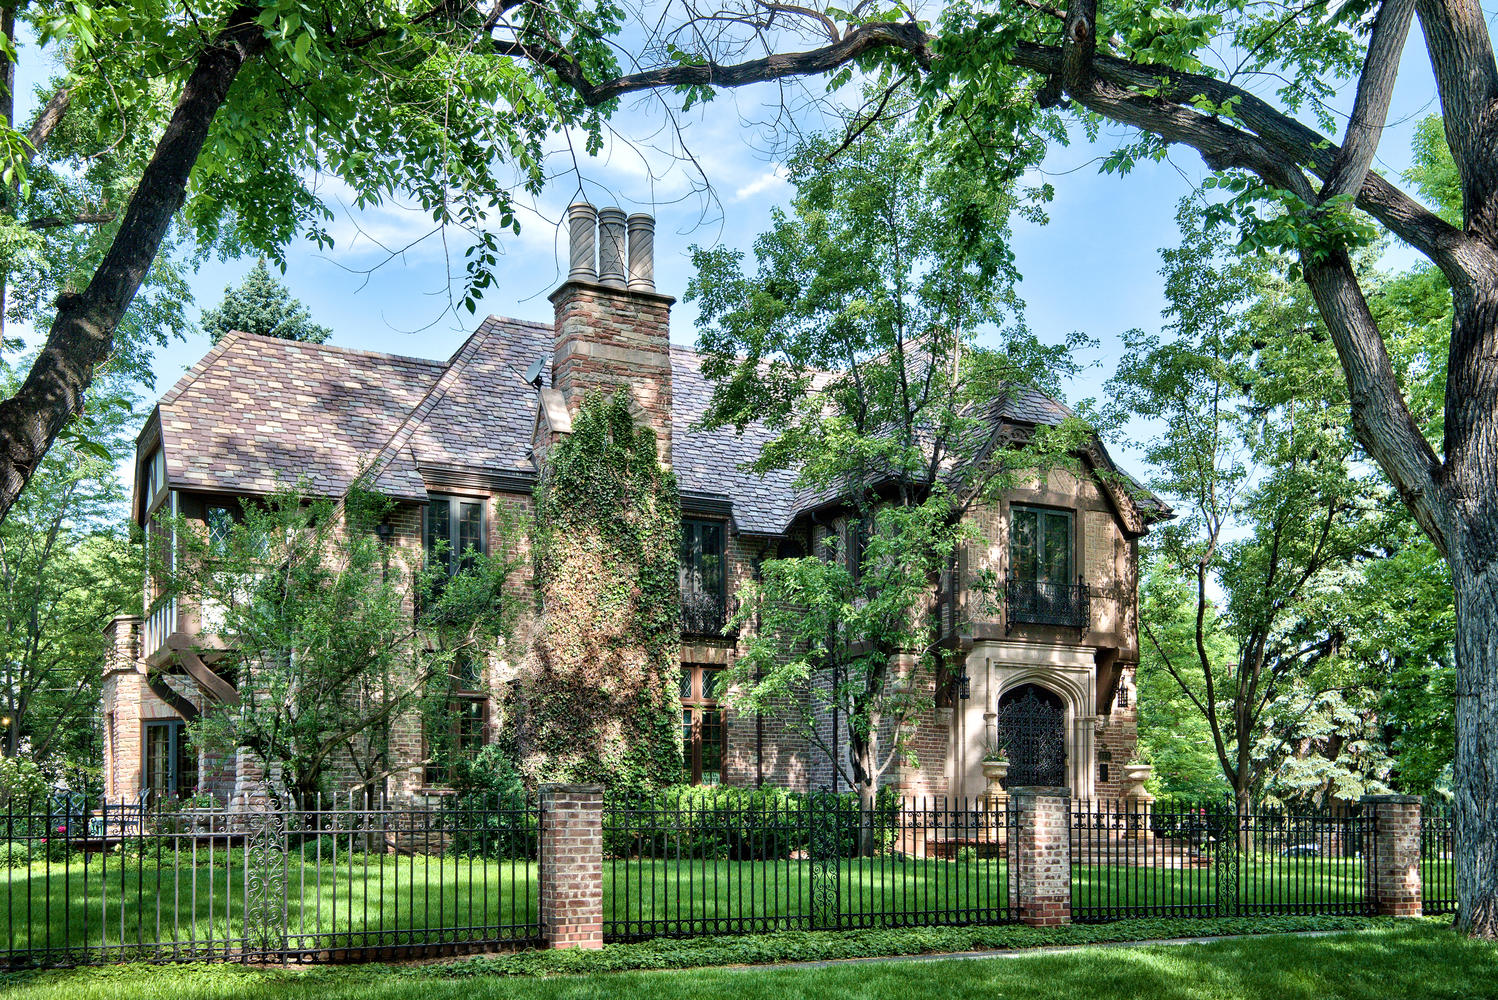 Single Family Home for Active at Spectacular Tudor on a Beautiful Half Acre in Historic Denver Country Club 177 Humboldt Street Denver, 80218 United States